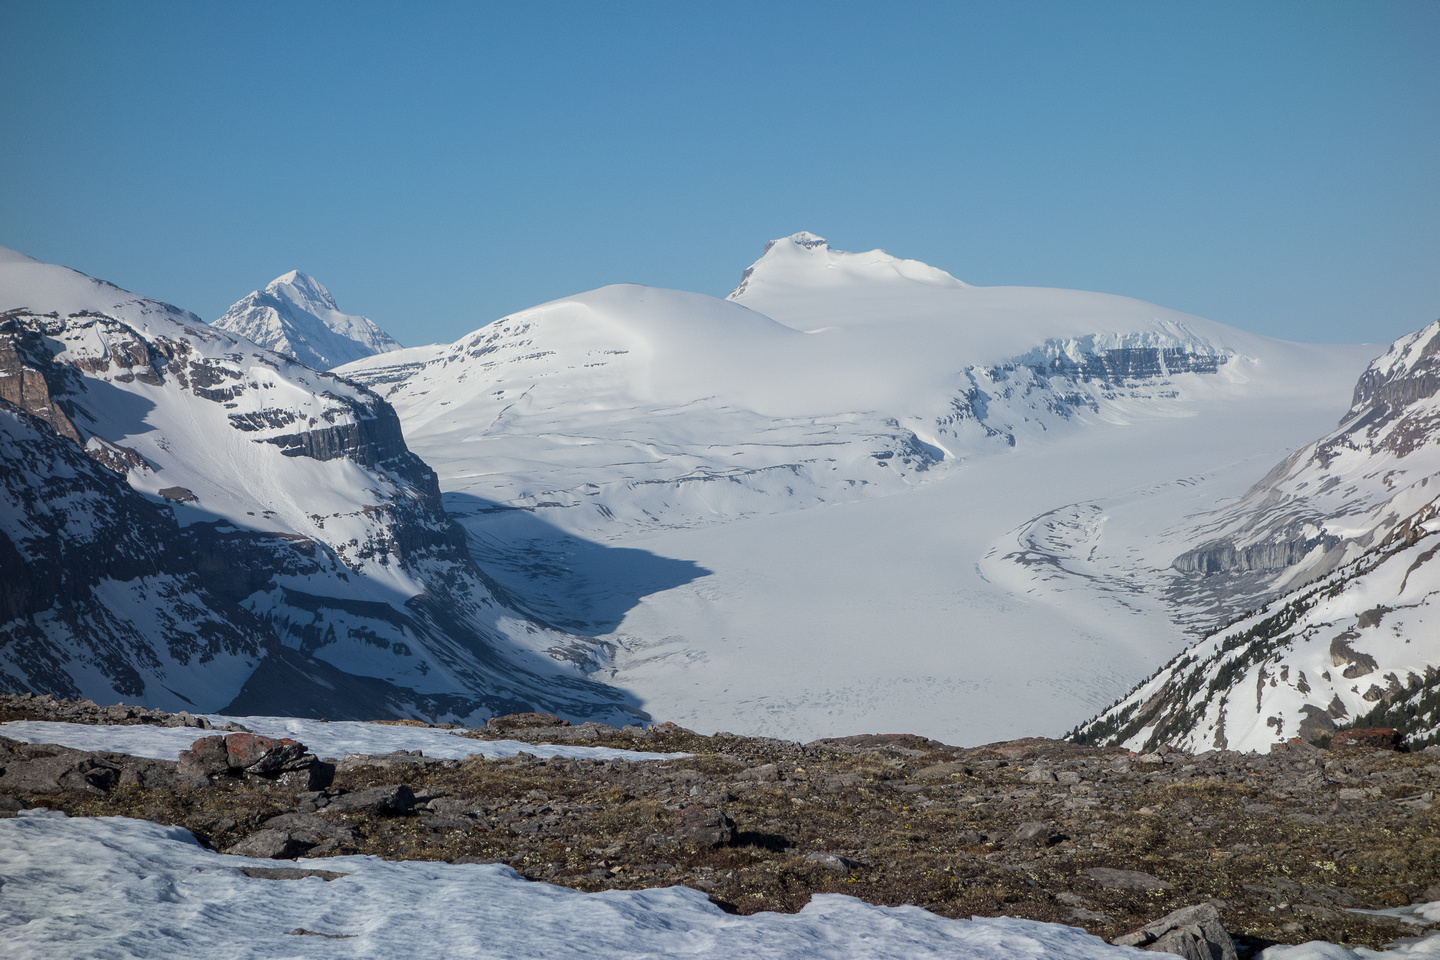 An excellent view of the Saskatchewan Glacier and Castleguard Mountain. The Castleguard Meadows are left of the shadow in the center of the photo.